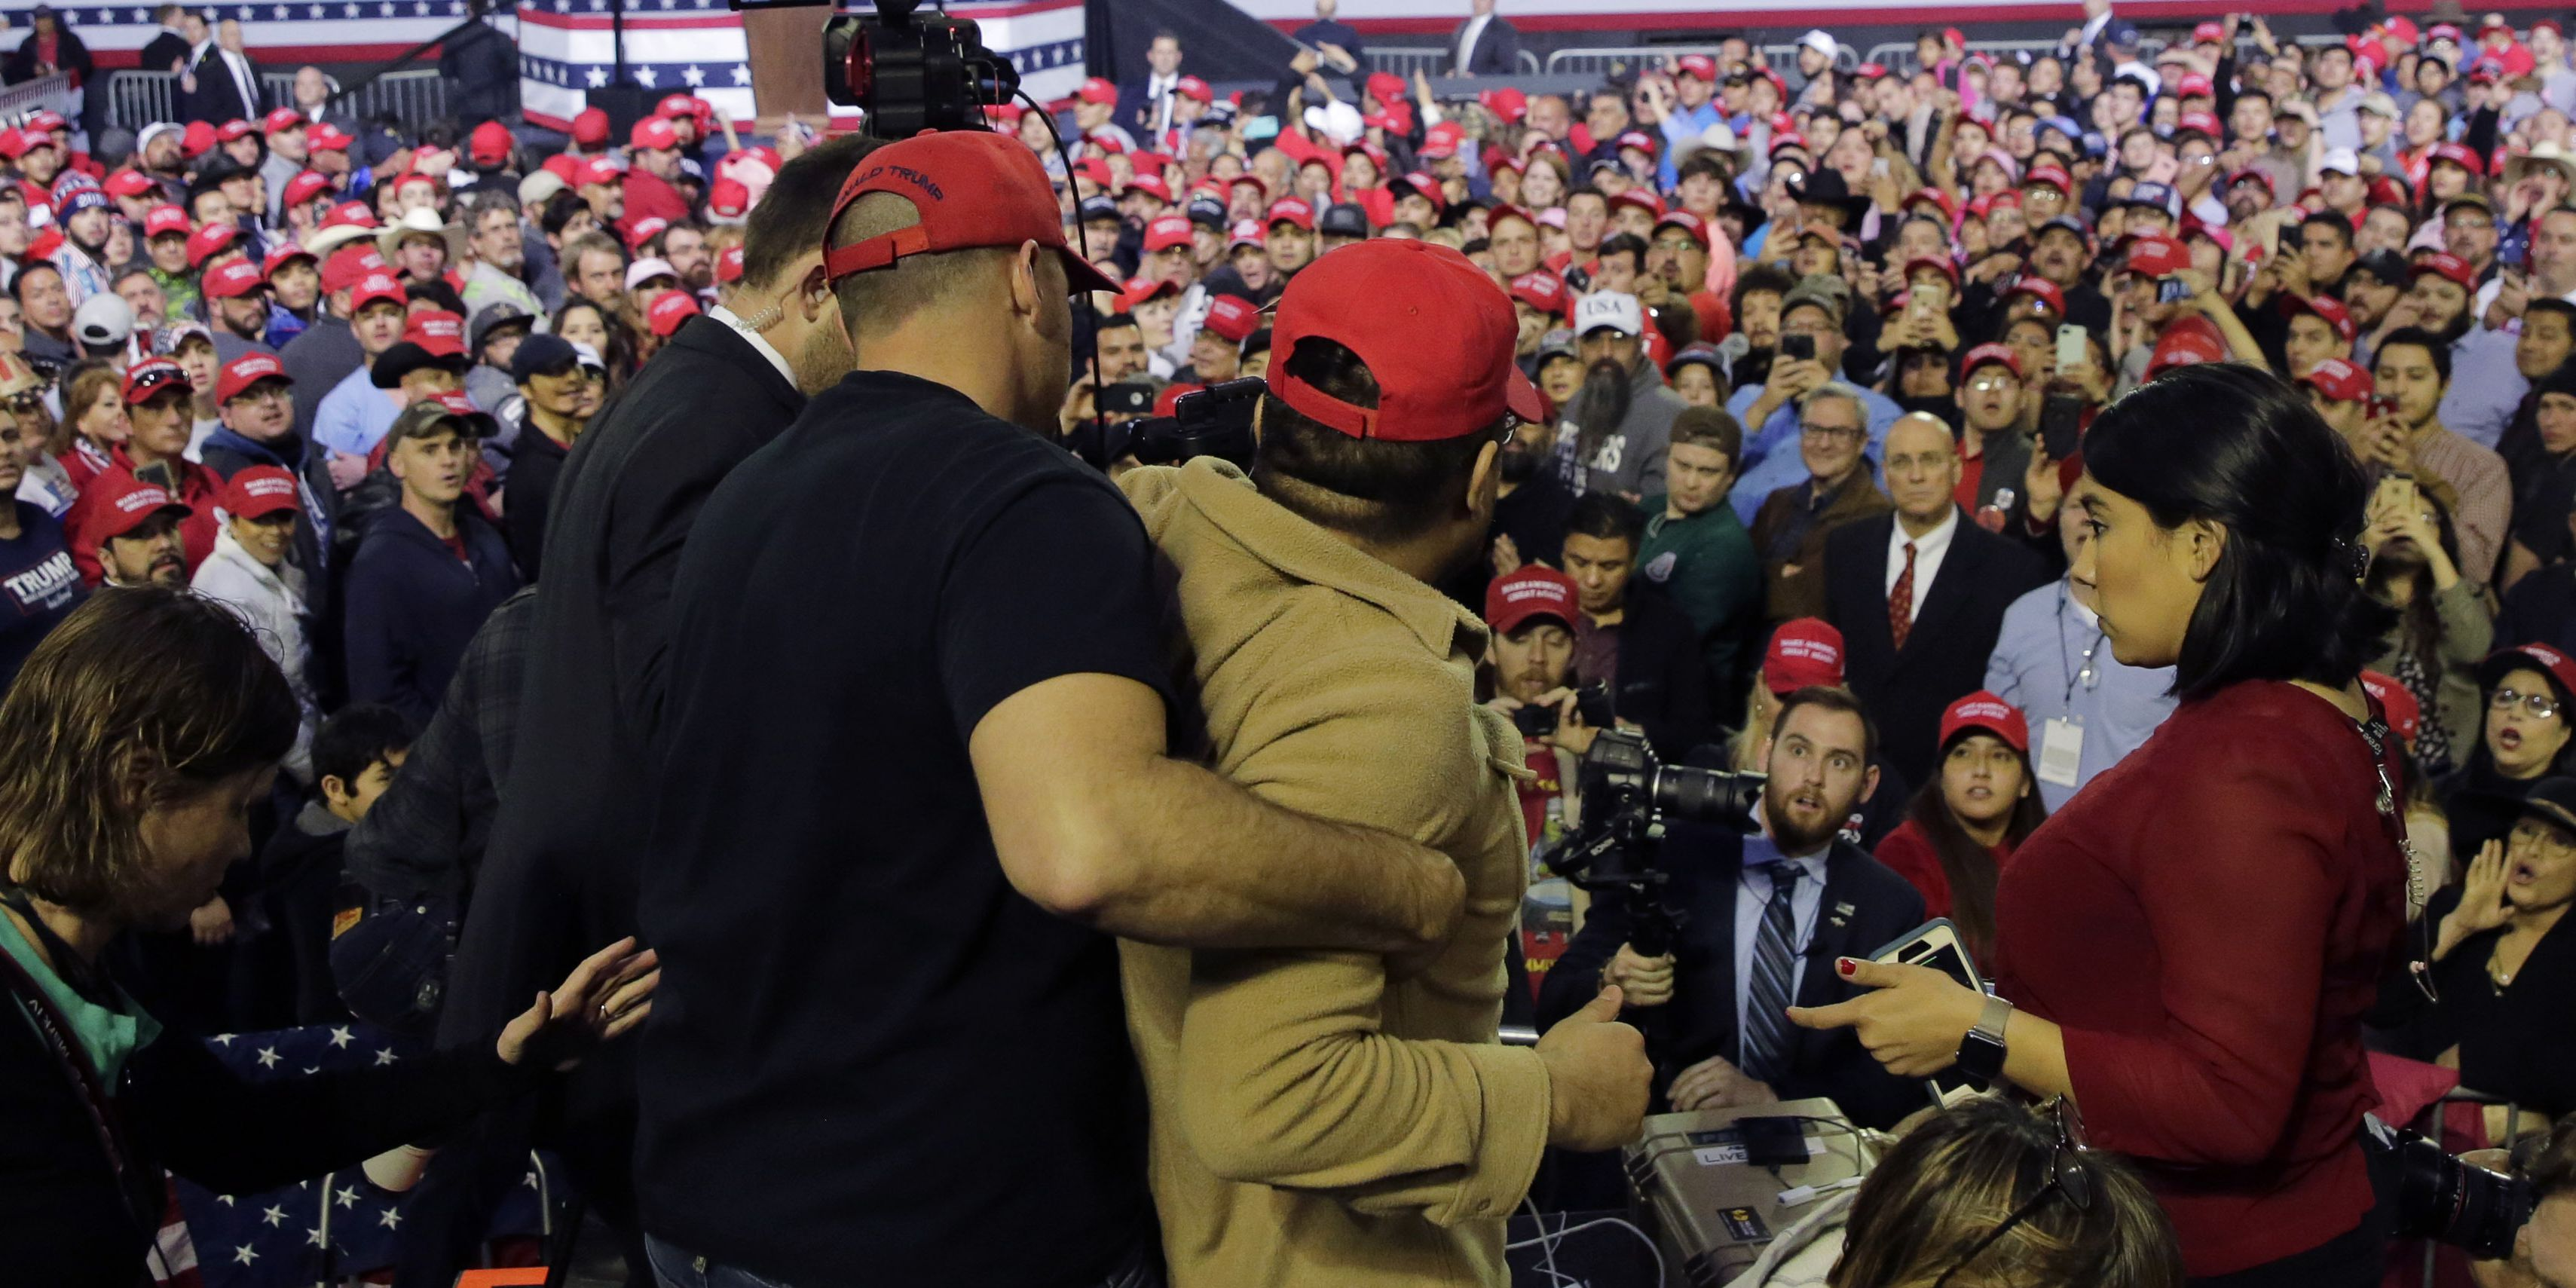 Man at Trump rally attacks BBC cameraman